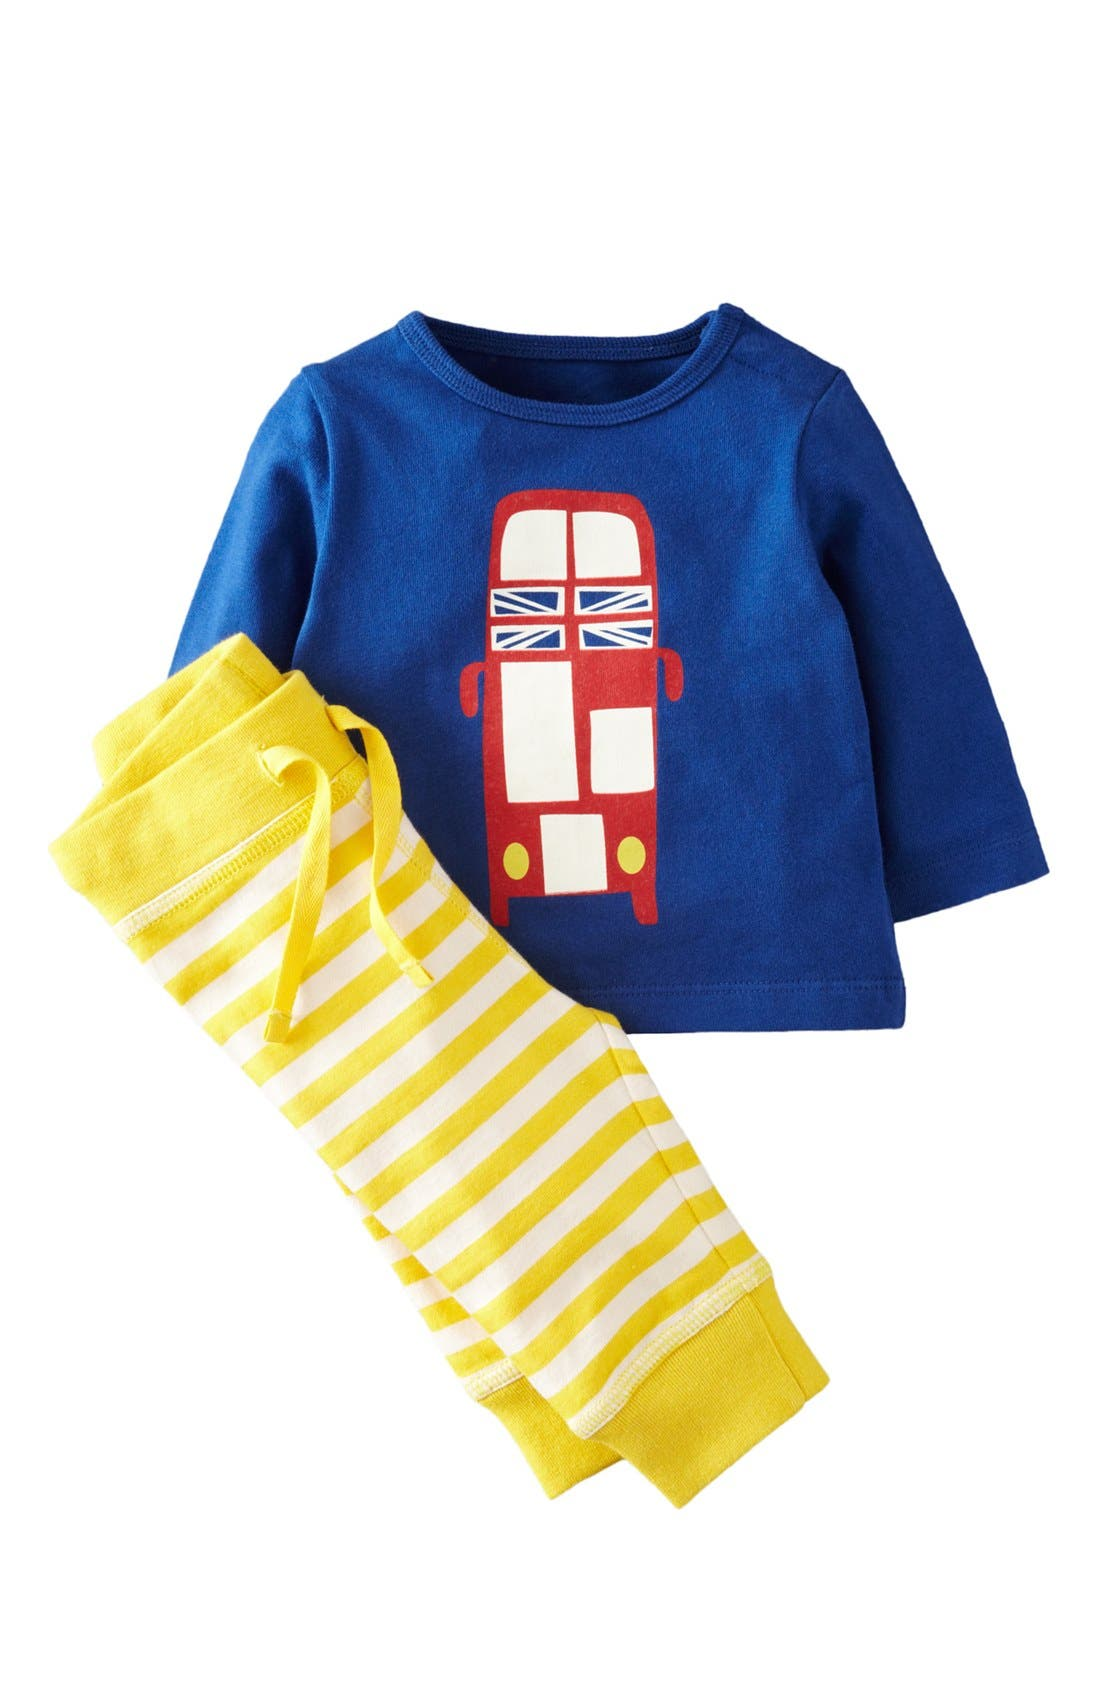 Alternate Image 1 Selected - Mini Boden Shirt & Leggings (Baby Boys)